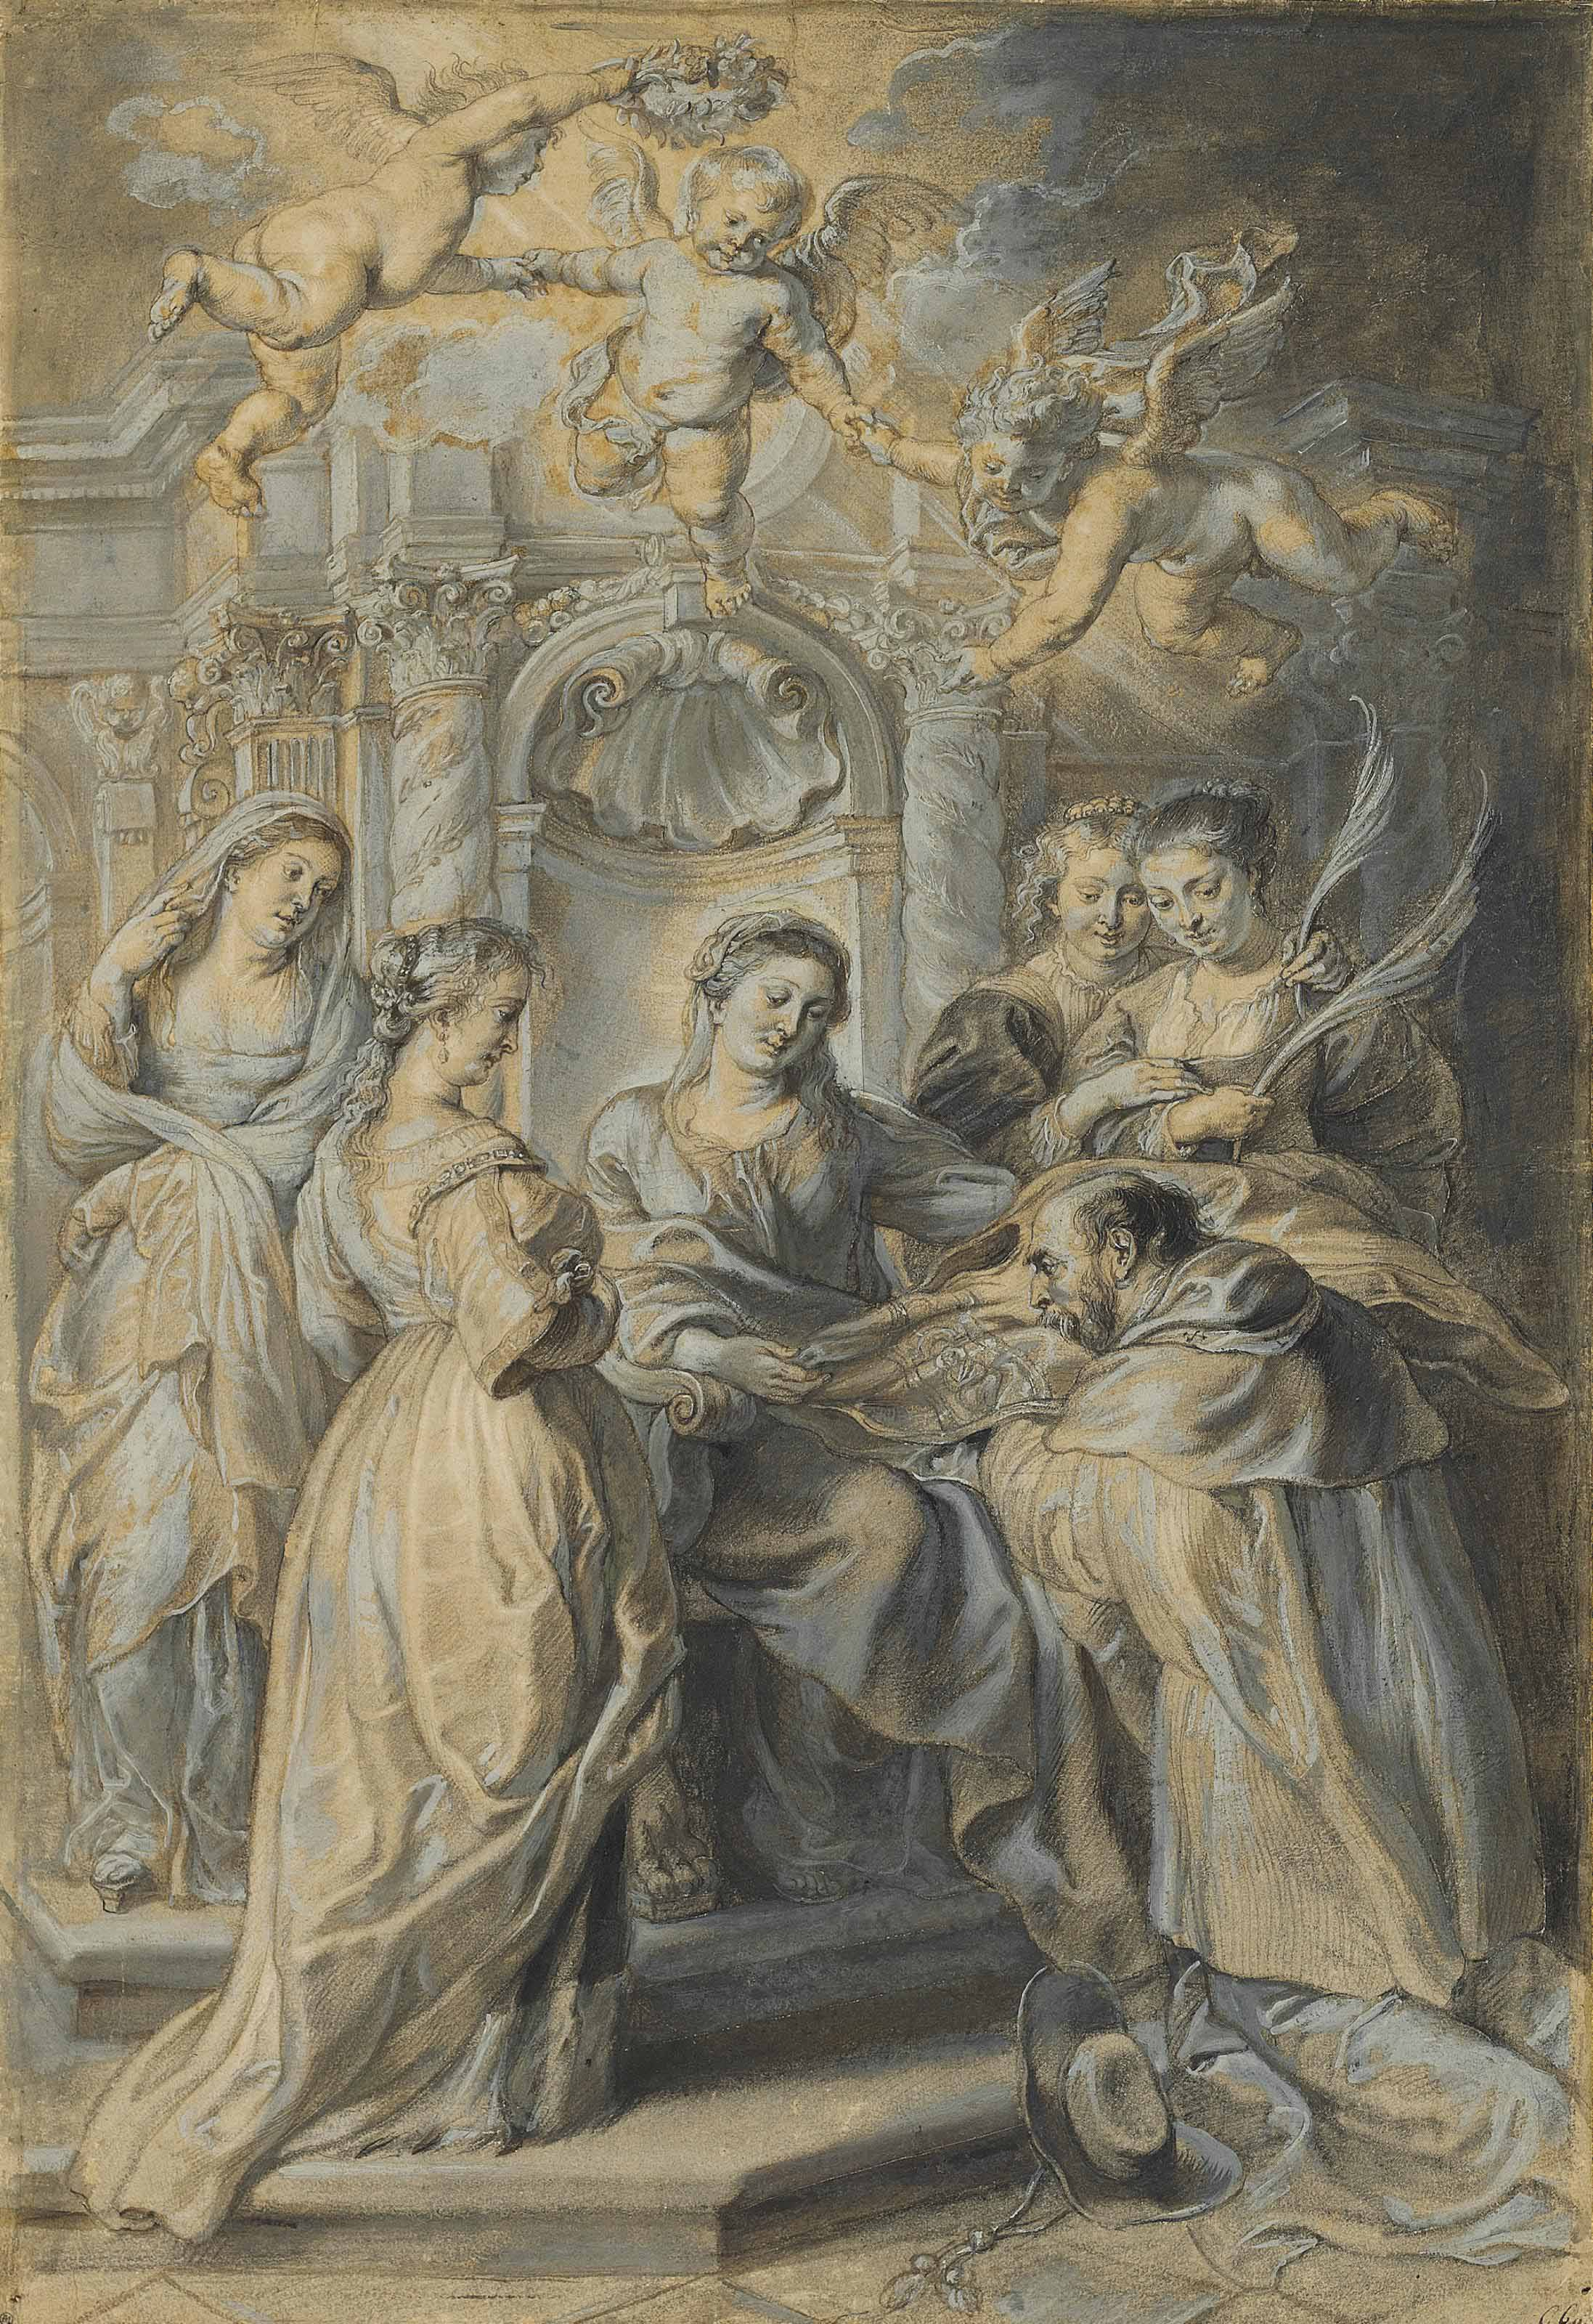 sir peter paul rubens siegen 1577 1640 antwerp extensively reworking a drawing attributed to. Black Bedroom Furniture Sets. Home Design Ideas